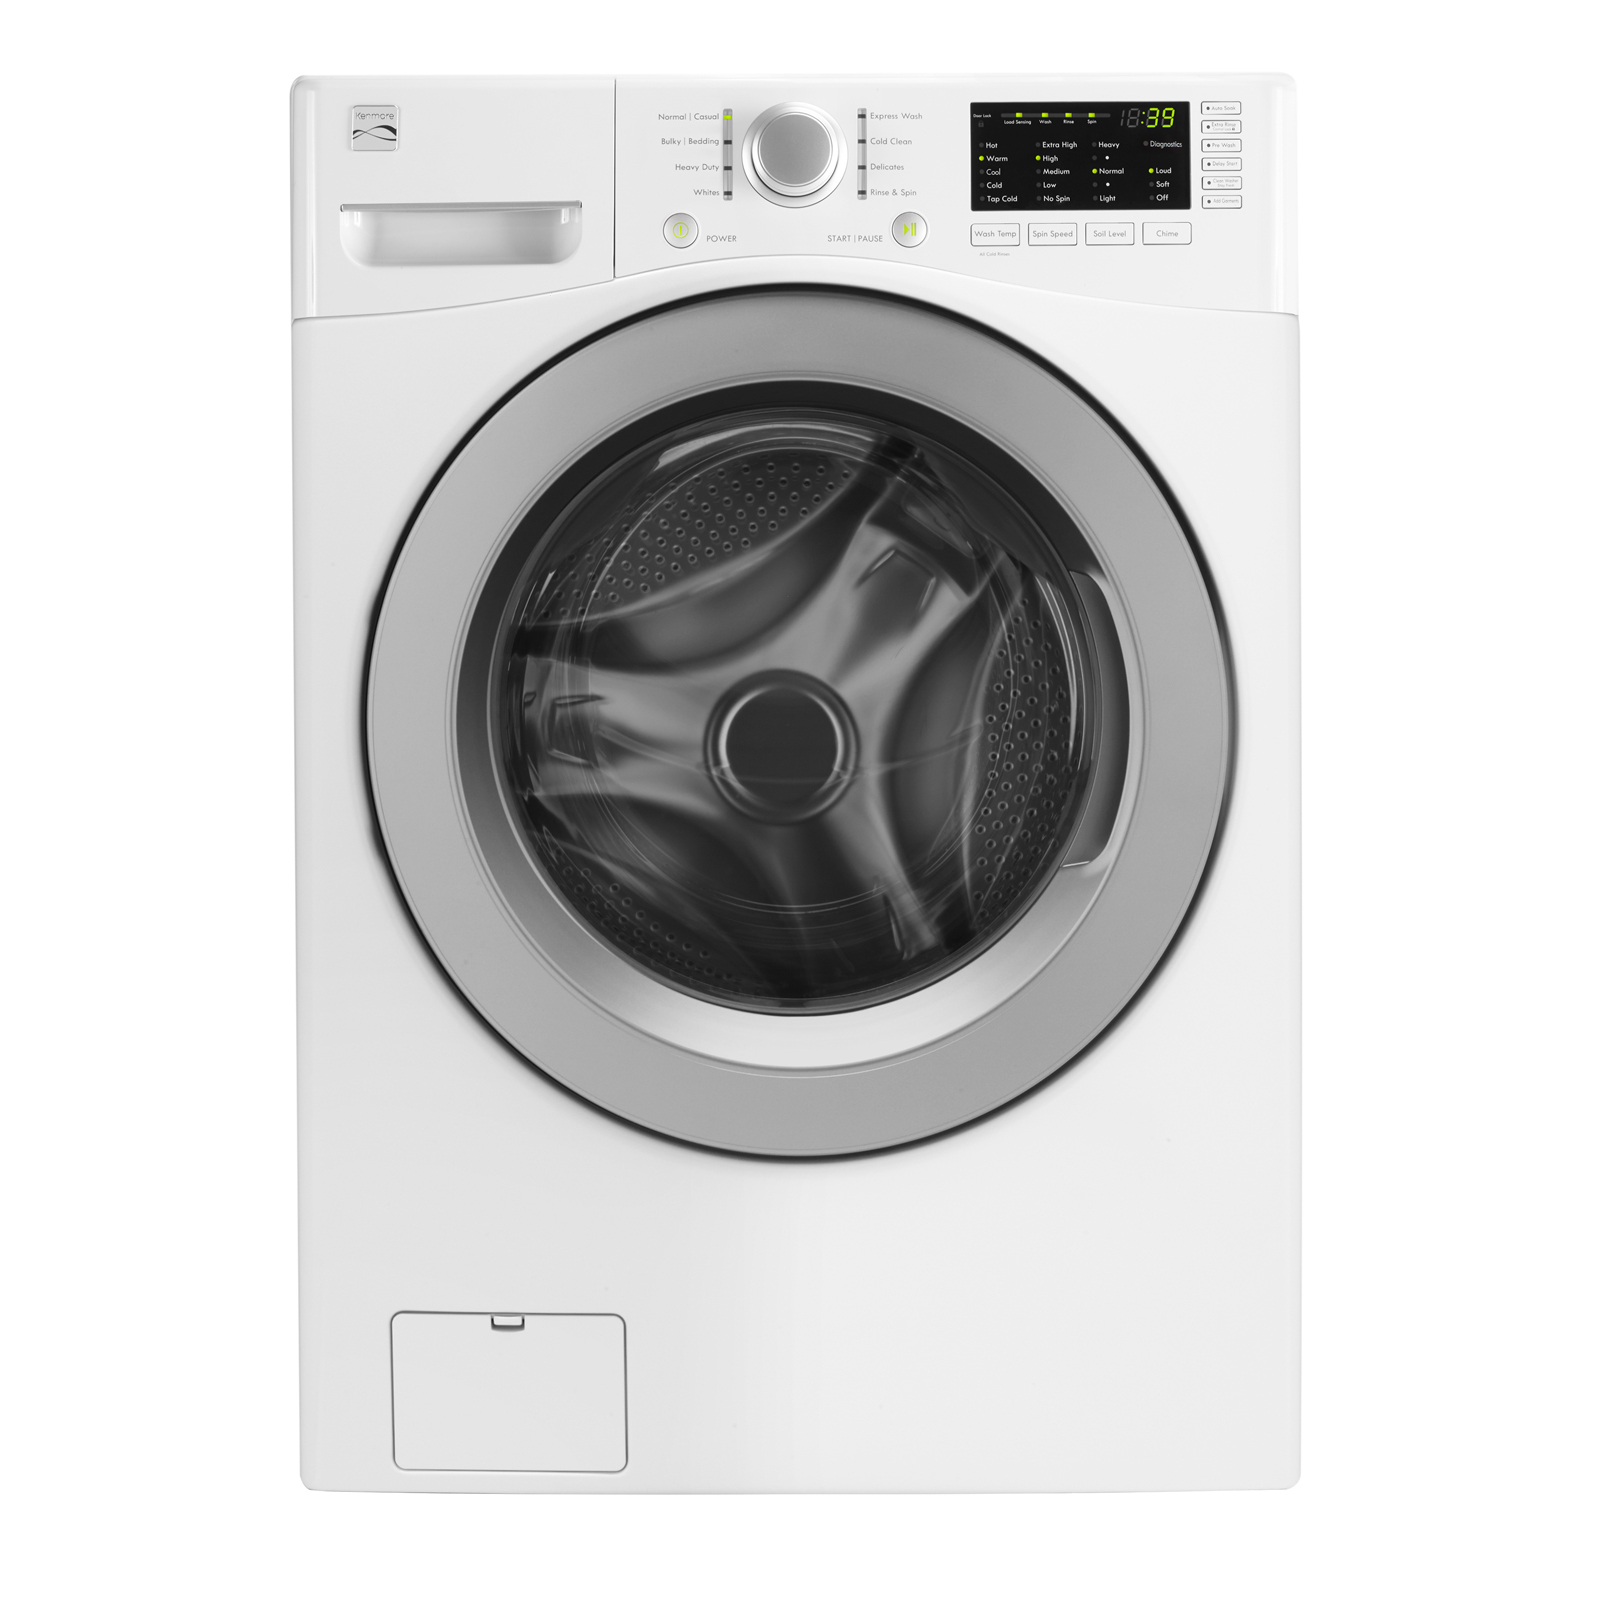 Kenmore 41262 4.5 cu. ft. Front-Load Washer - White